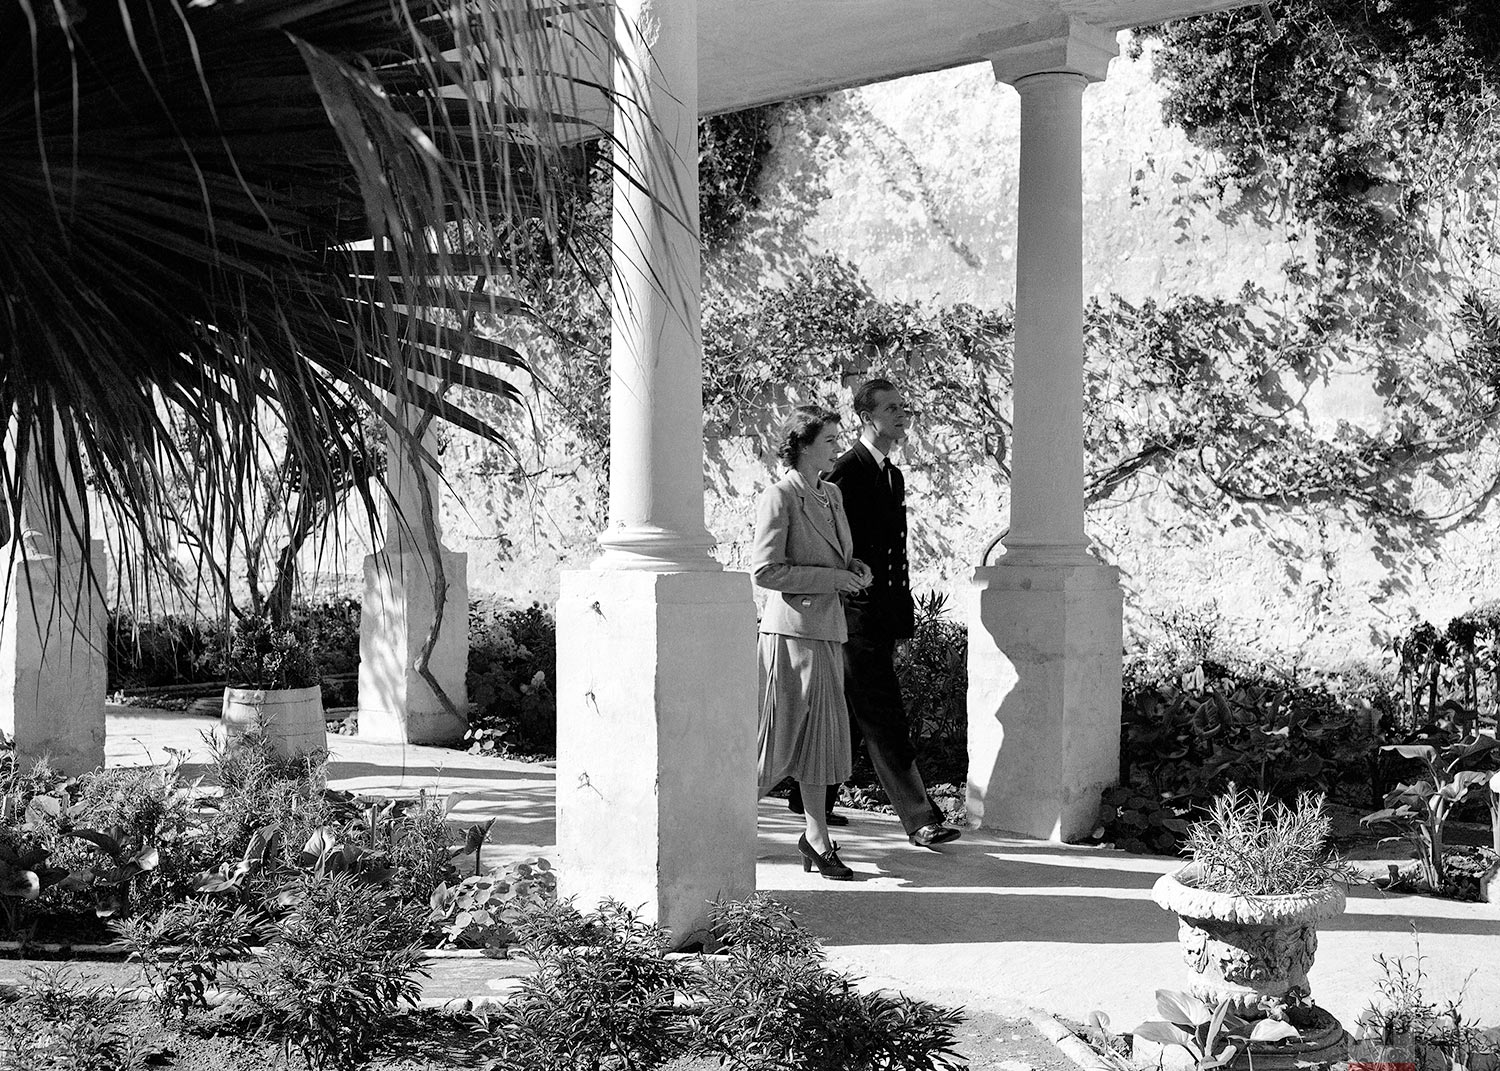 """Princess Elizabeth and her husband, Philip, Duke of Edinburgh, are seen strolling in the gardens of the Villa Guardamangia, Malta on Nov. 23, 1949. The Princess is residing at the Villa during her stay in the island to visit her husband. The Duke of Edinburgh is First Lieutenant aboard the destroyer """"Chequers"""" presently refitting at Malta. (AP Photo/Max Desfor)"""